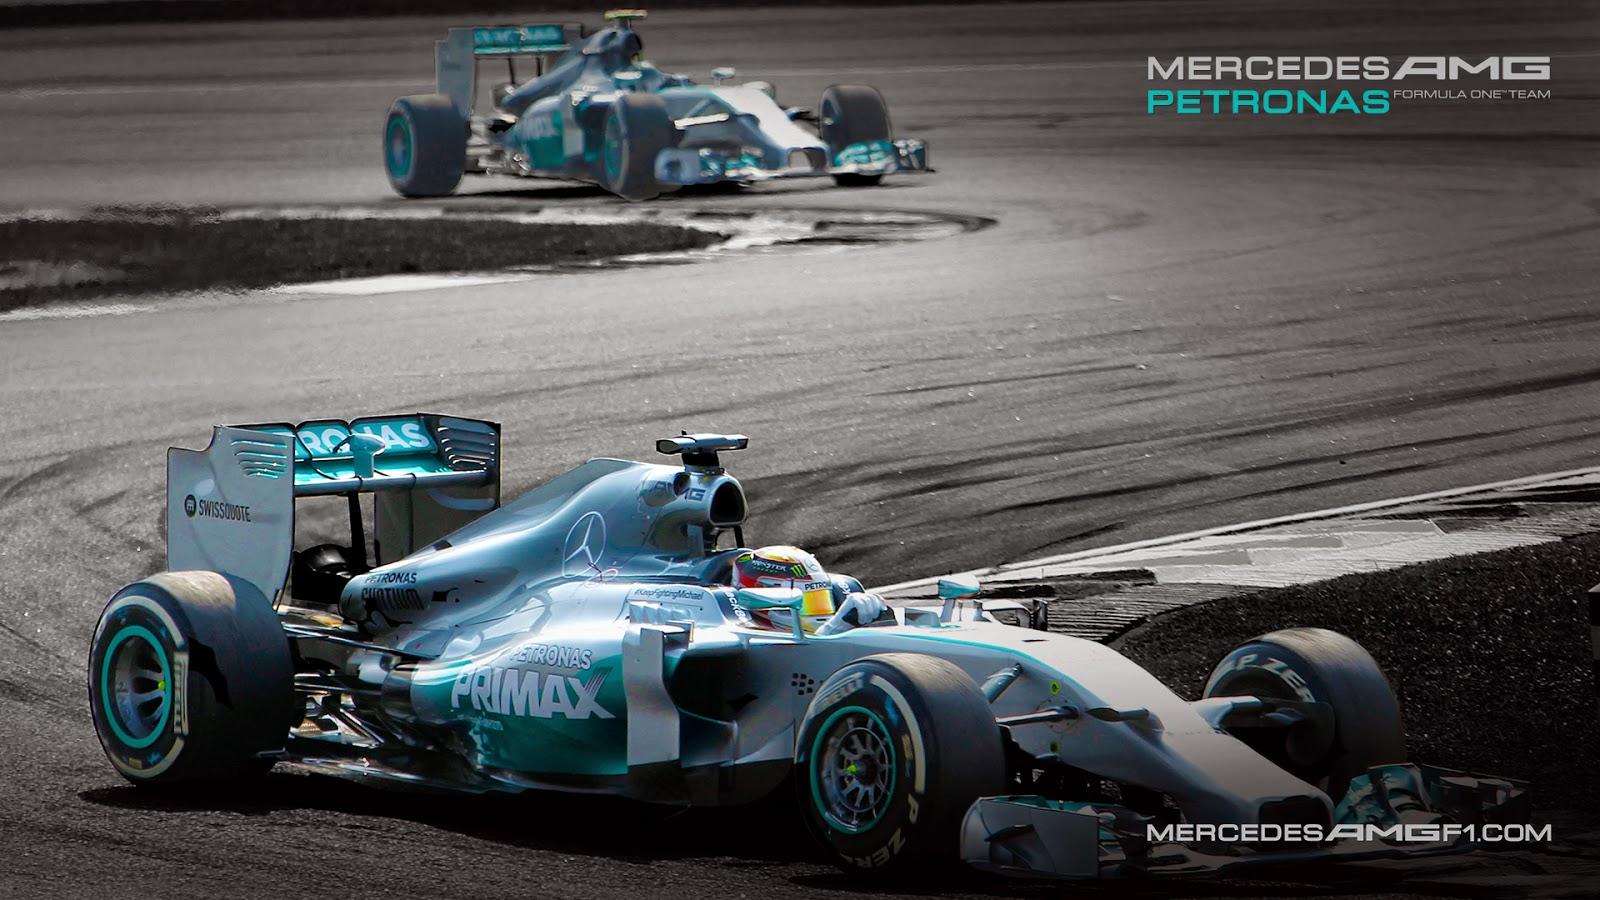 Mercedes w08 f1 wallpaper 11